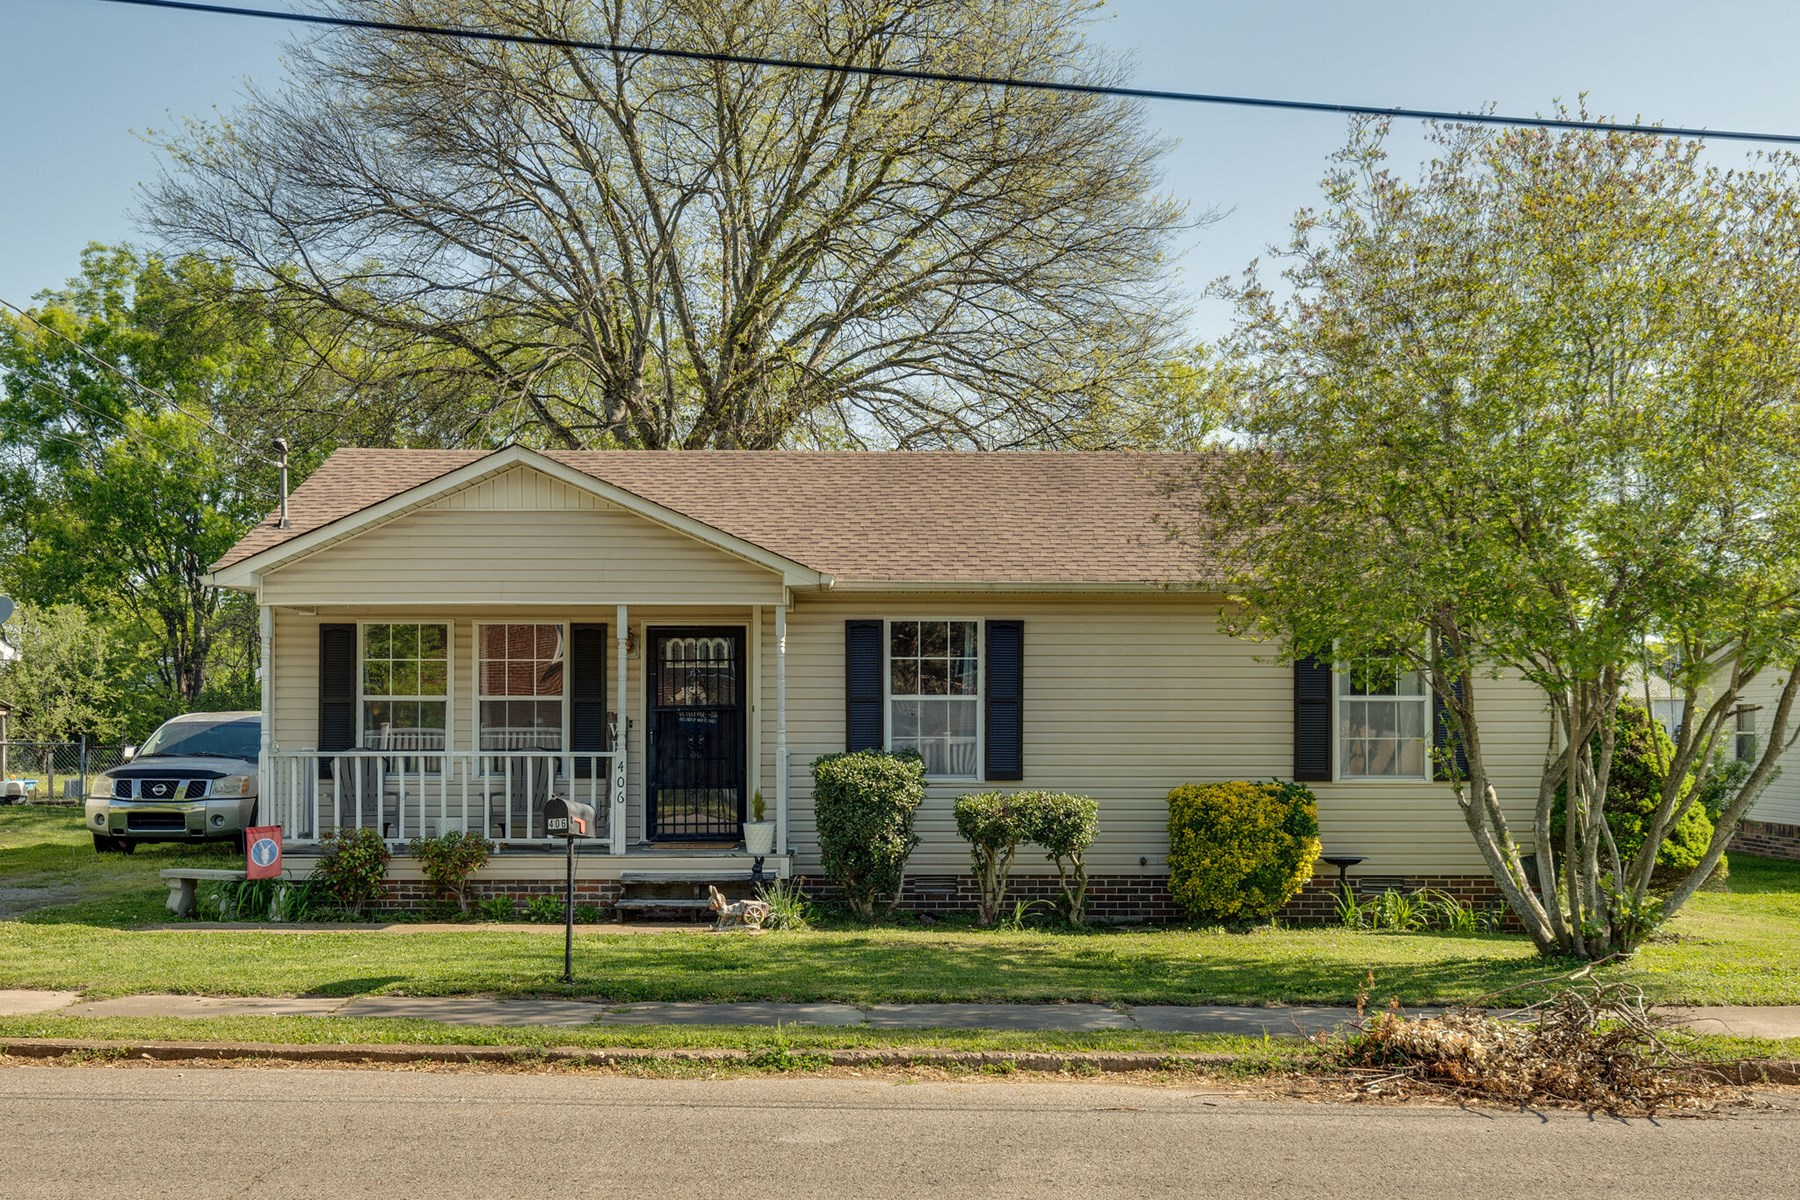 Home in Town for Sale in Mount Pleasant, Tennessee